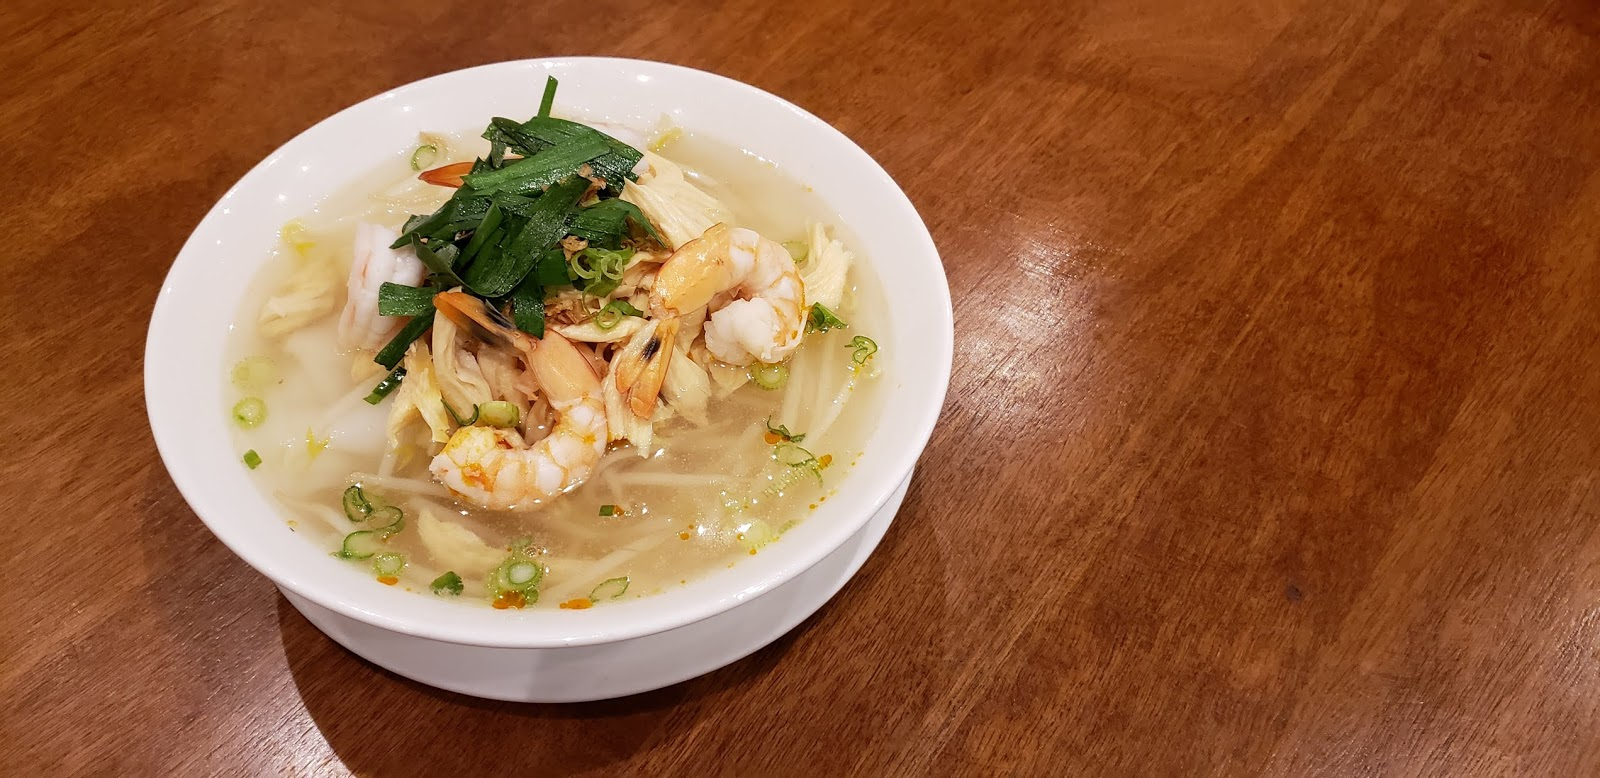 Ipoh Shredded Chicken Noodle Soup